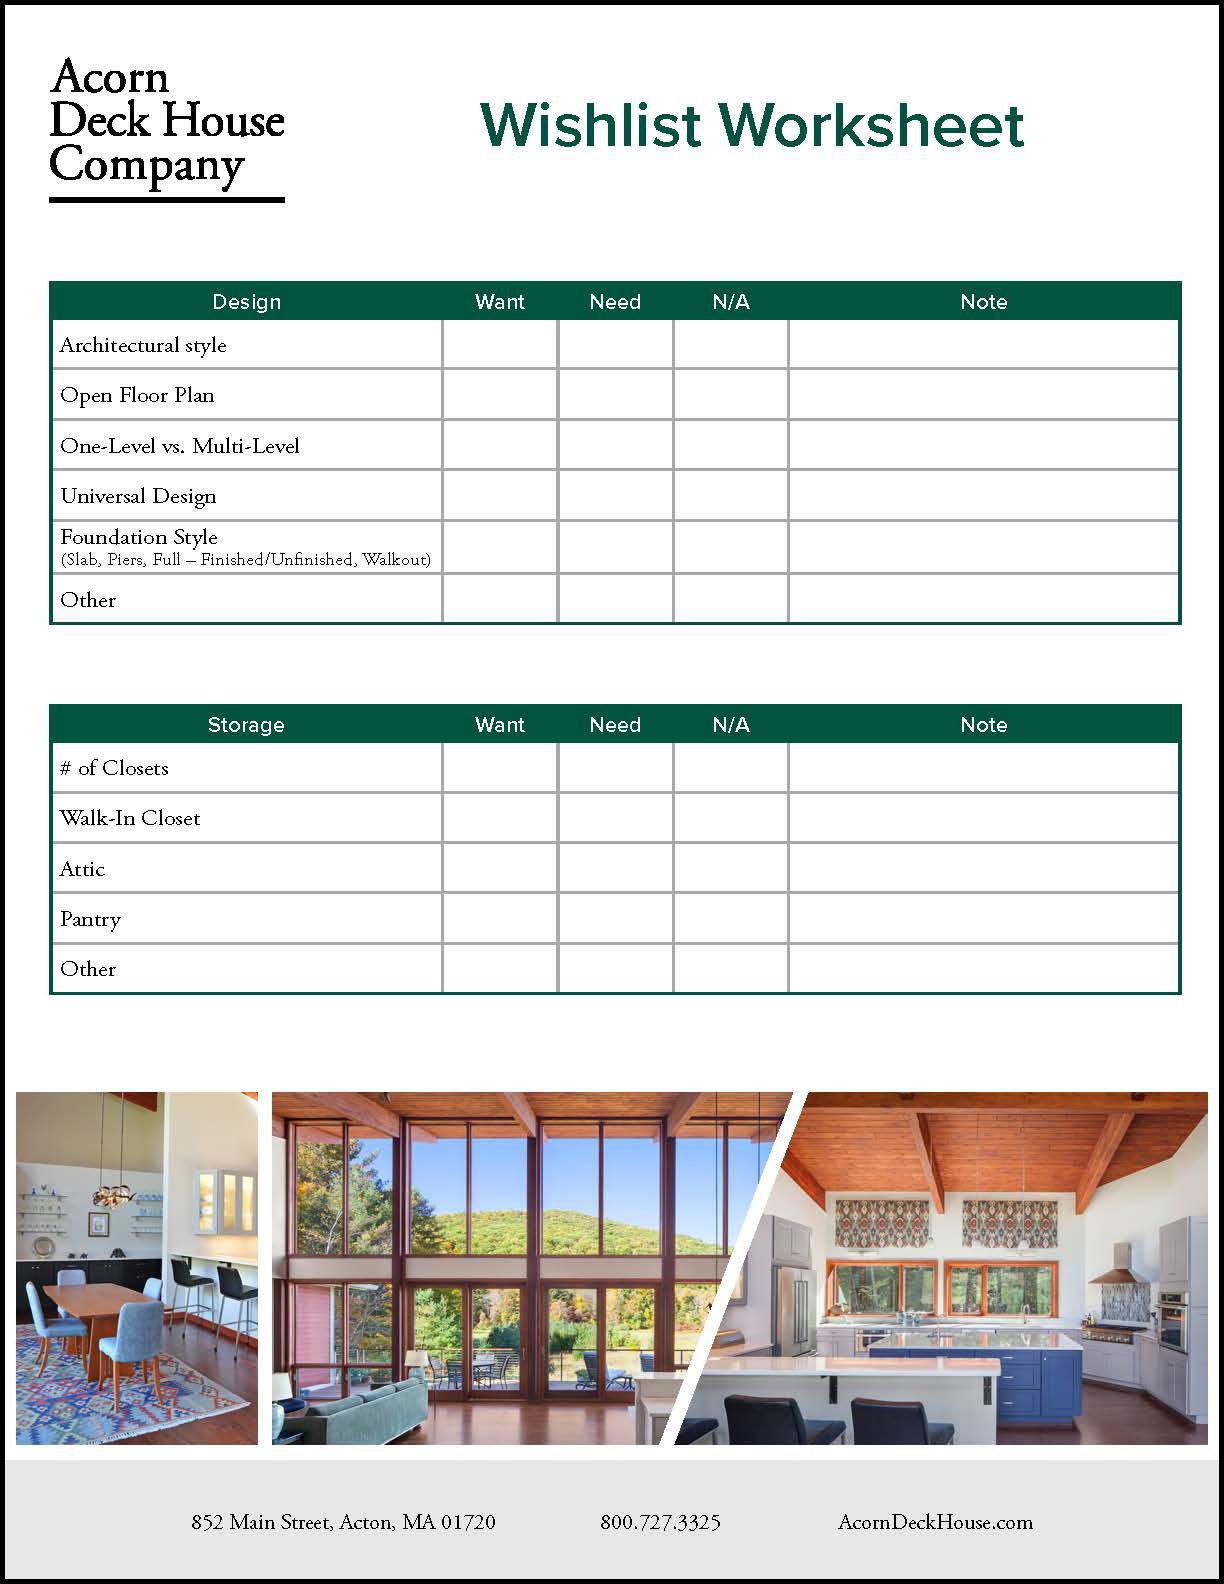 Plan Your Dream Home With This Downloadable Custom Home Wishlist Worksheet House Deck Building A House Custom Homes